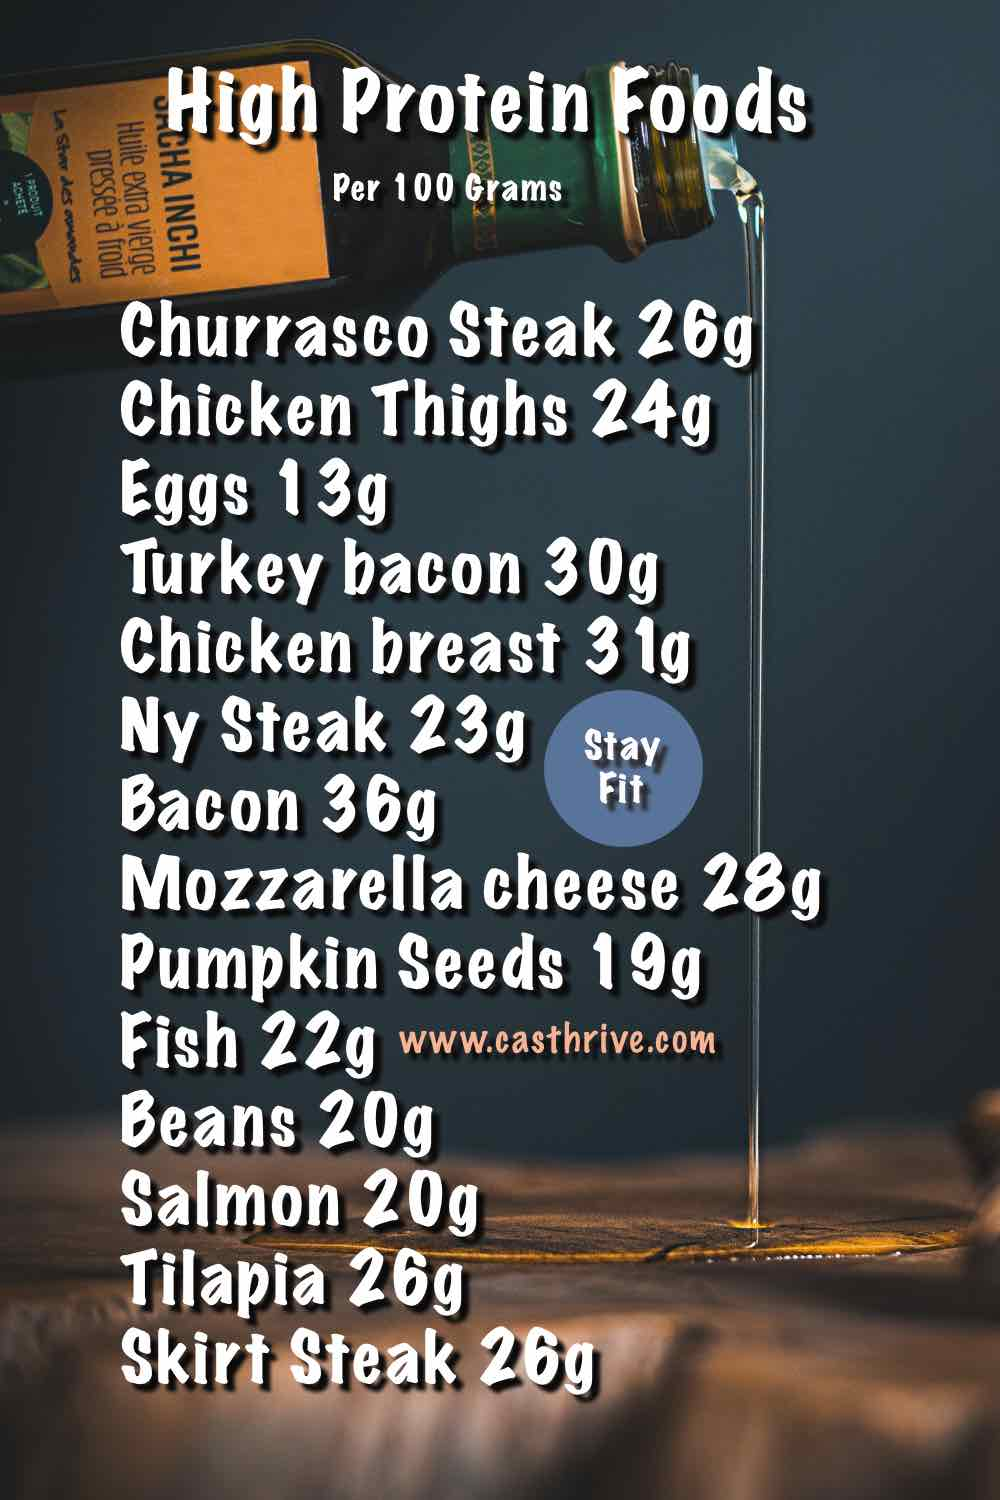 High protein foods list for weight loss.